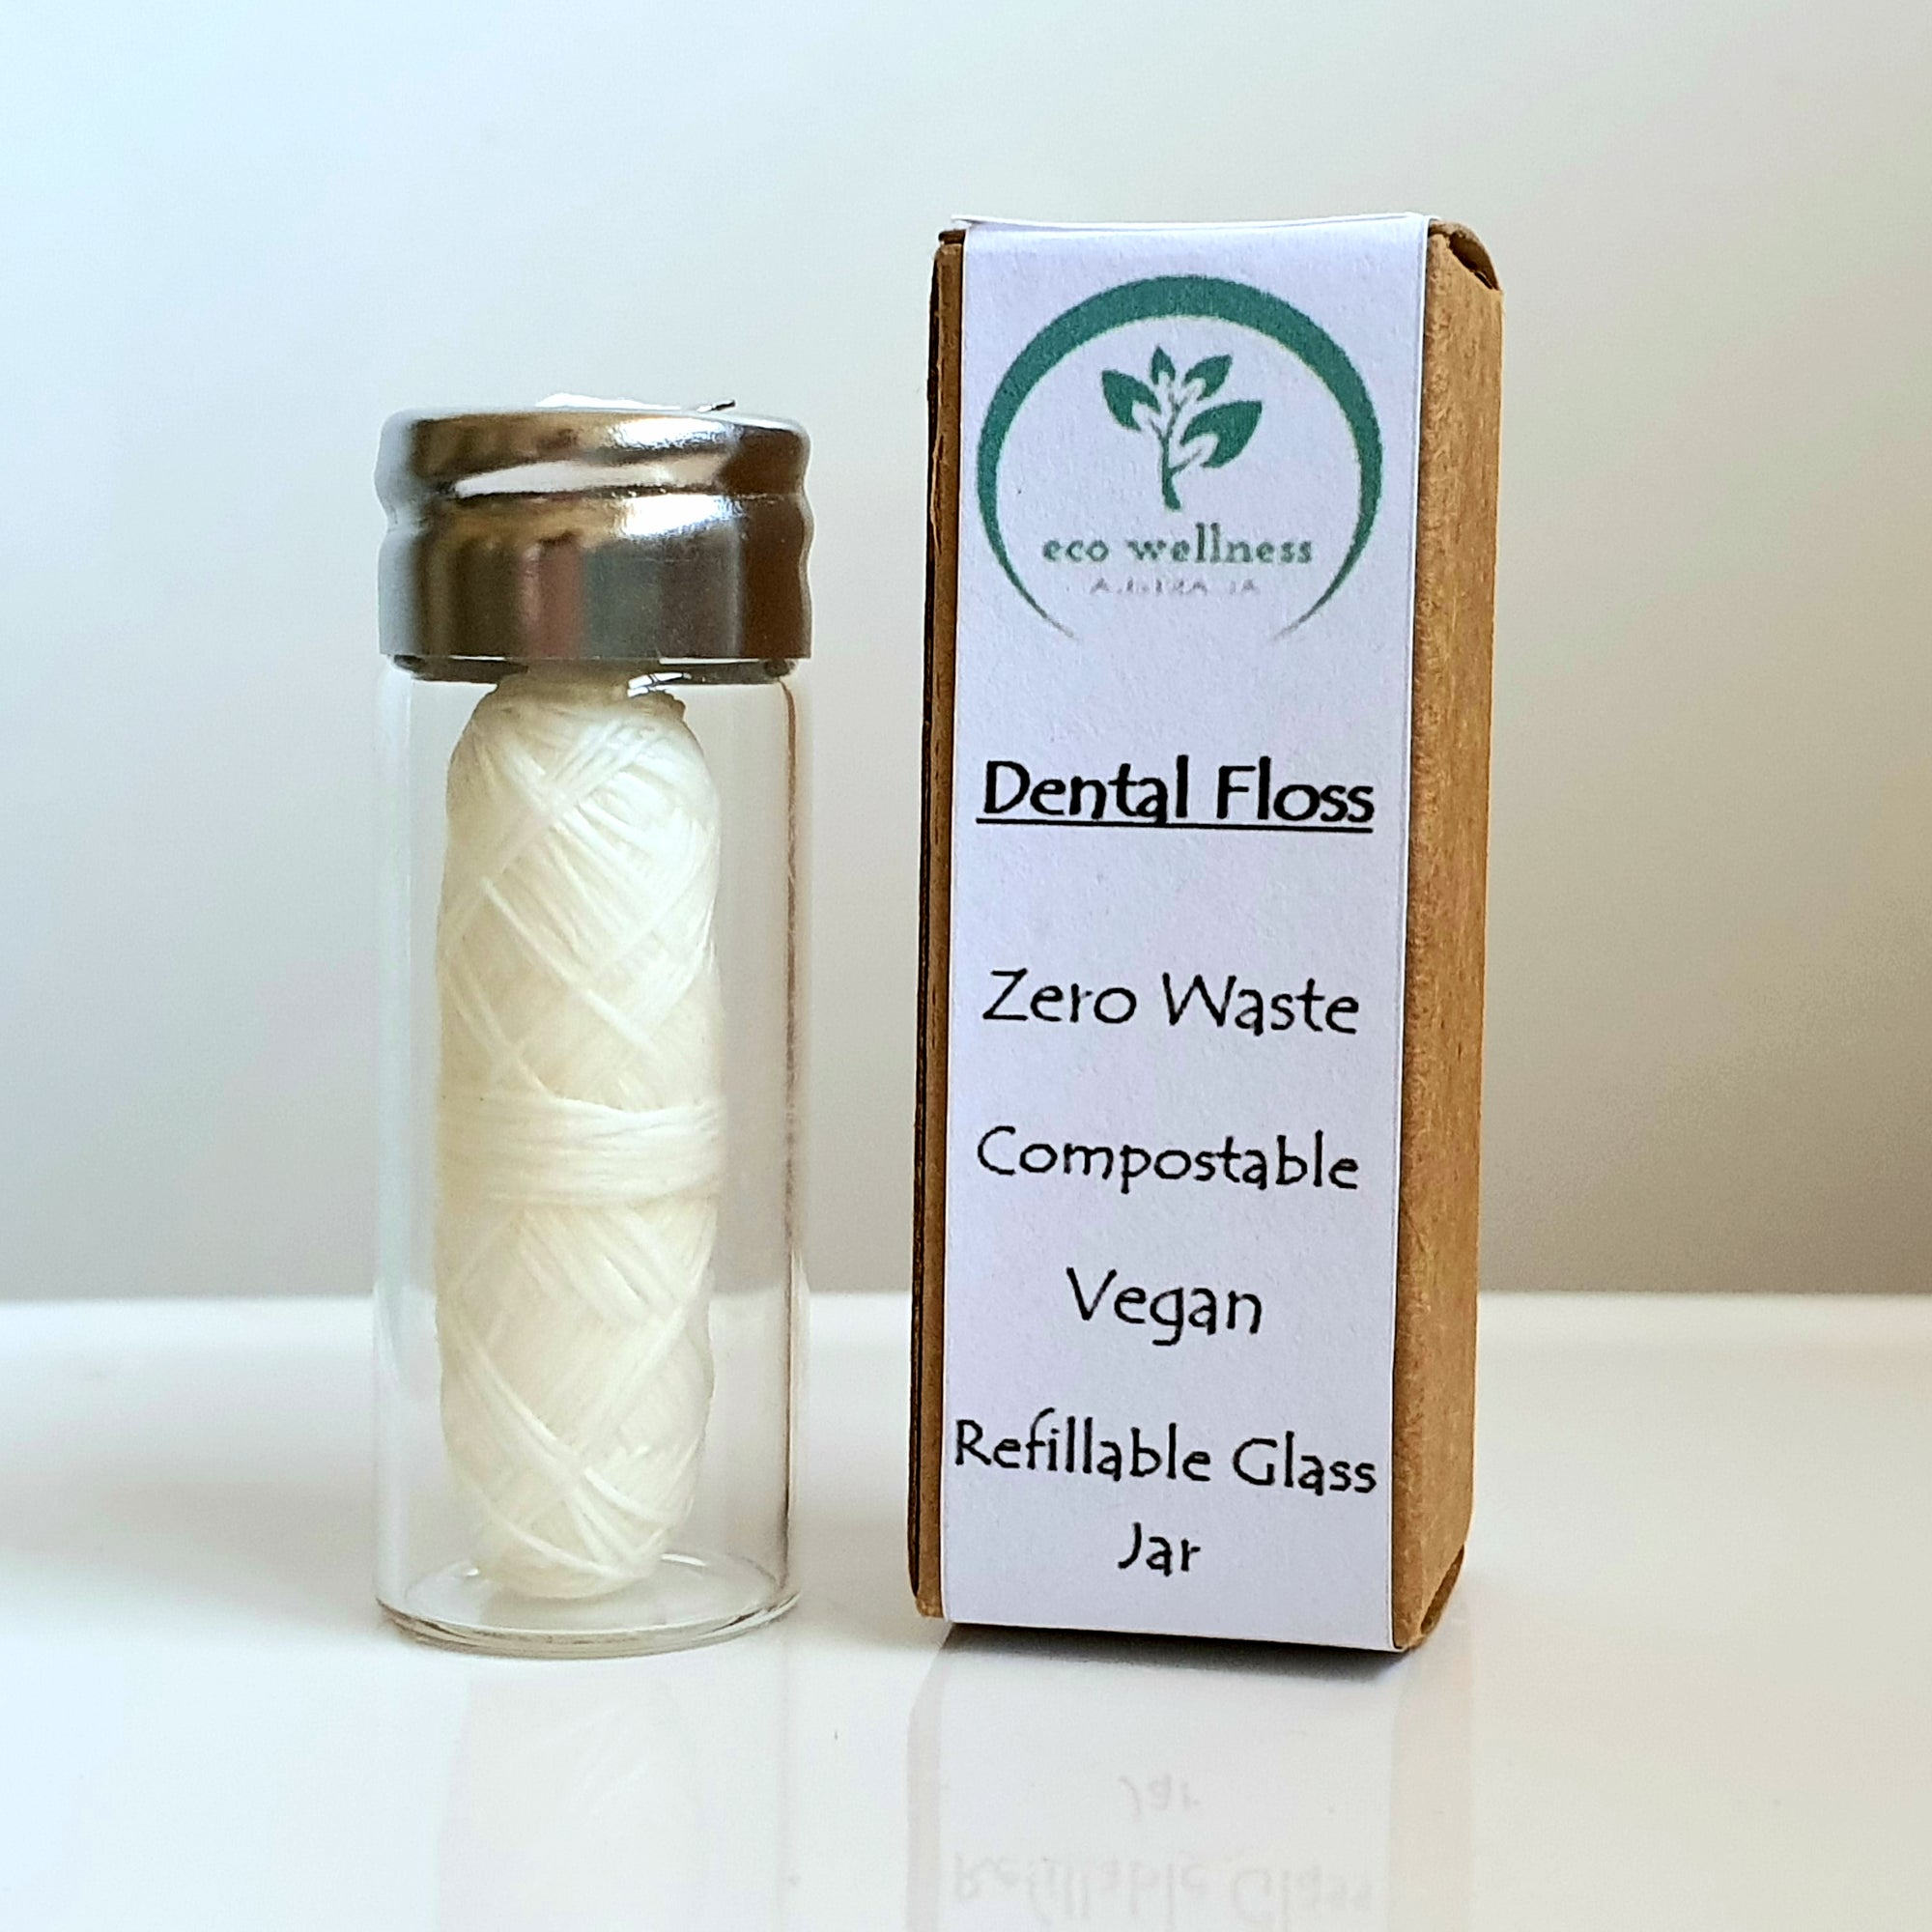 Zero Waste Dental Floss